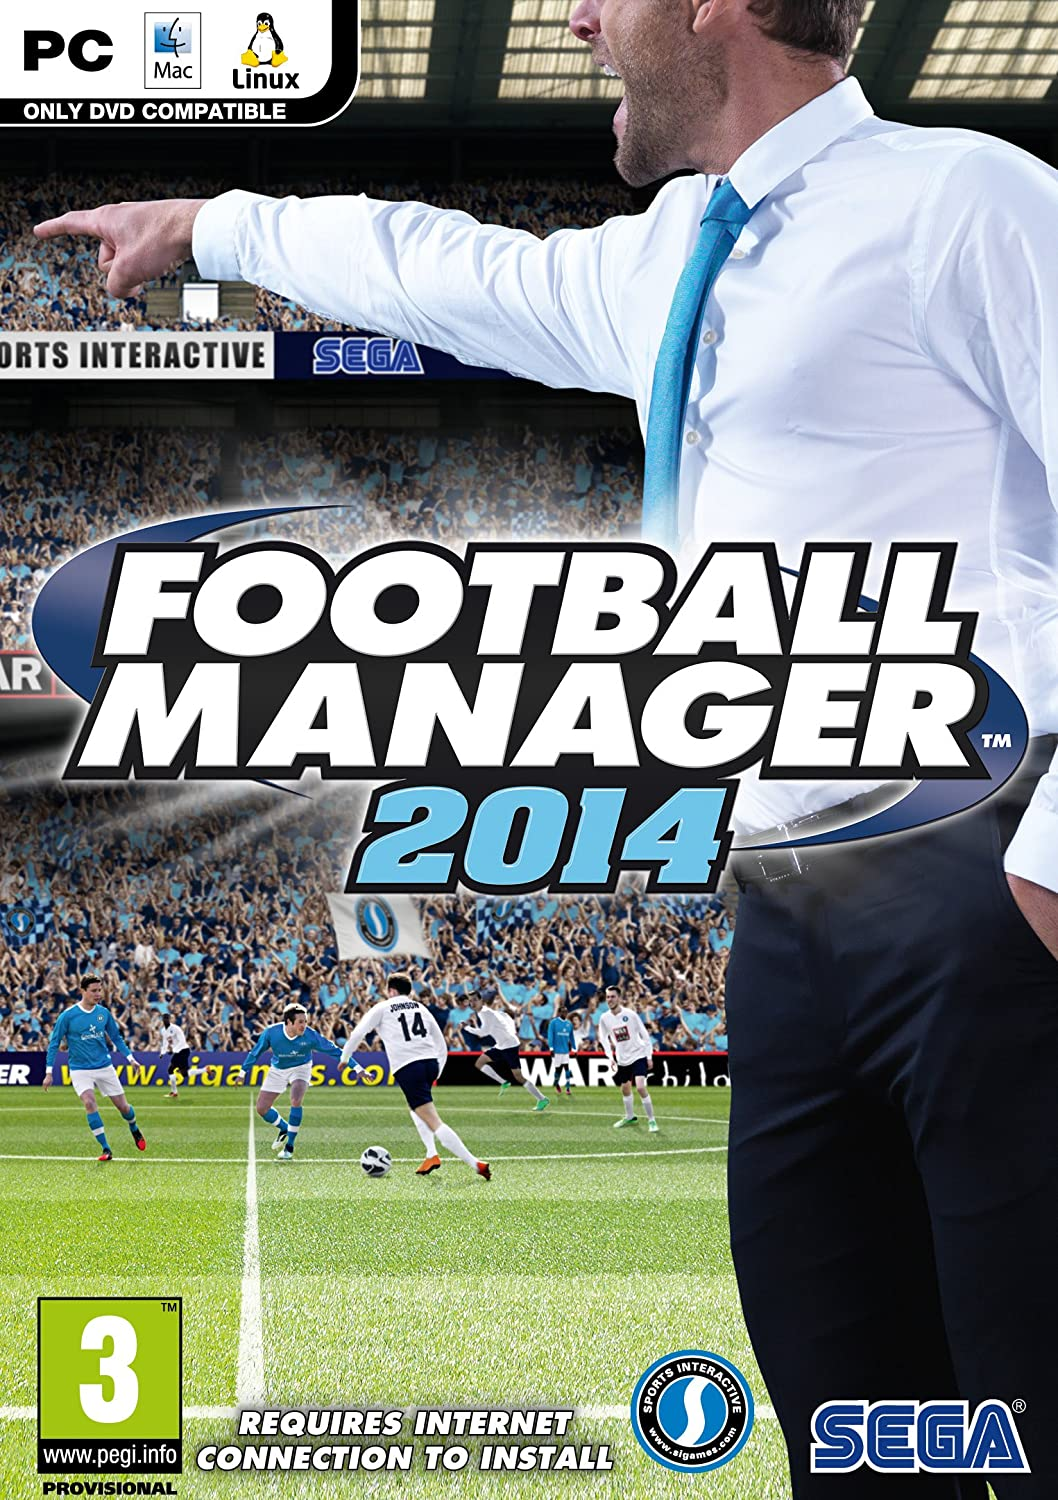 Download Football Manager 2014 Torrent PC BETA